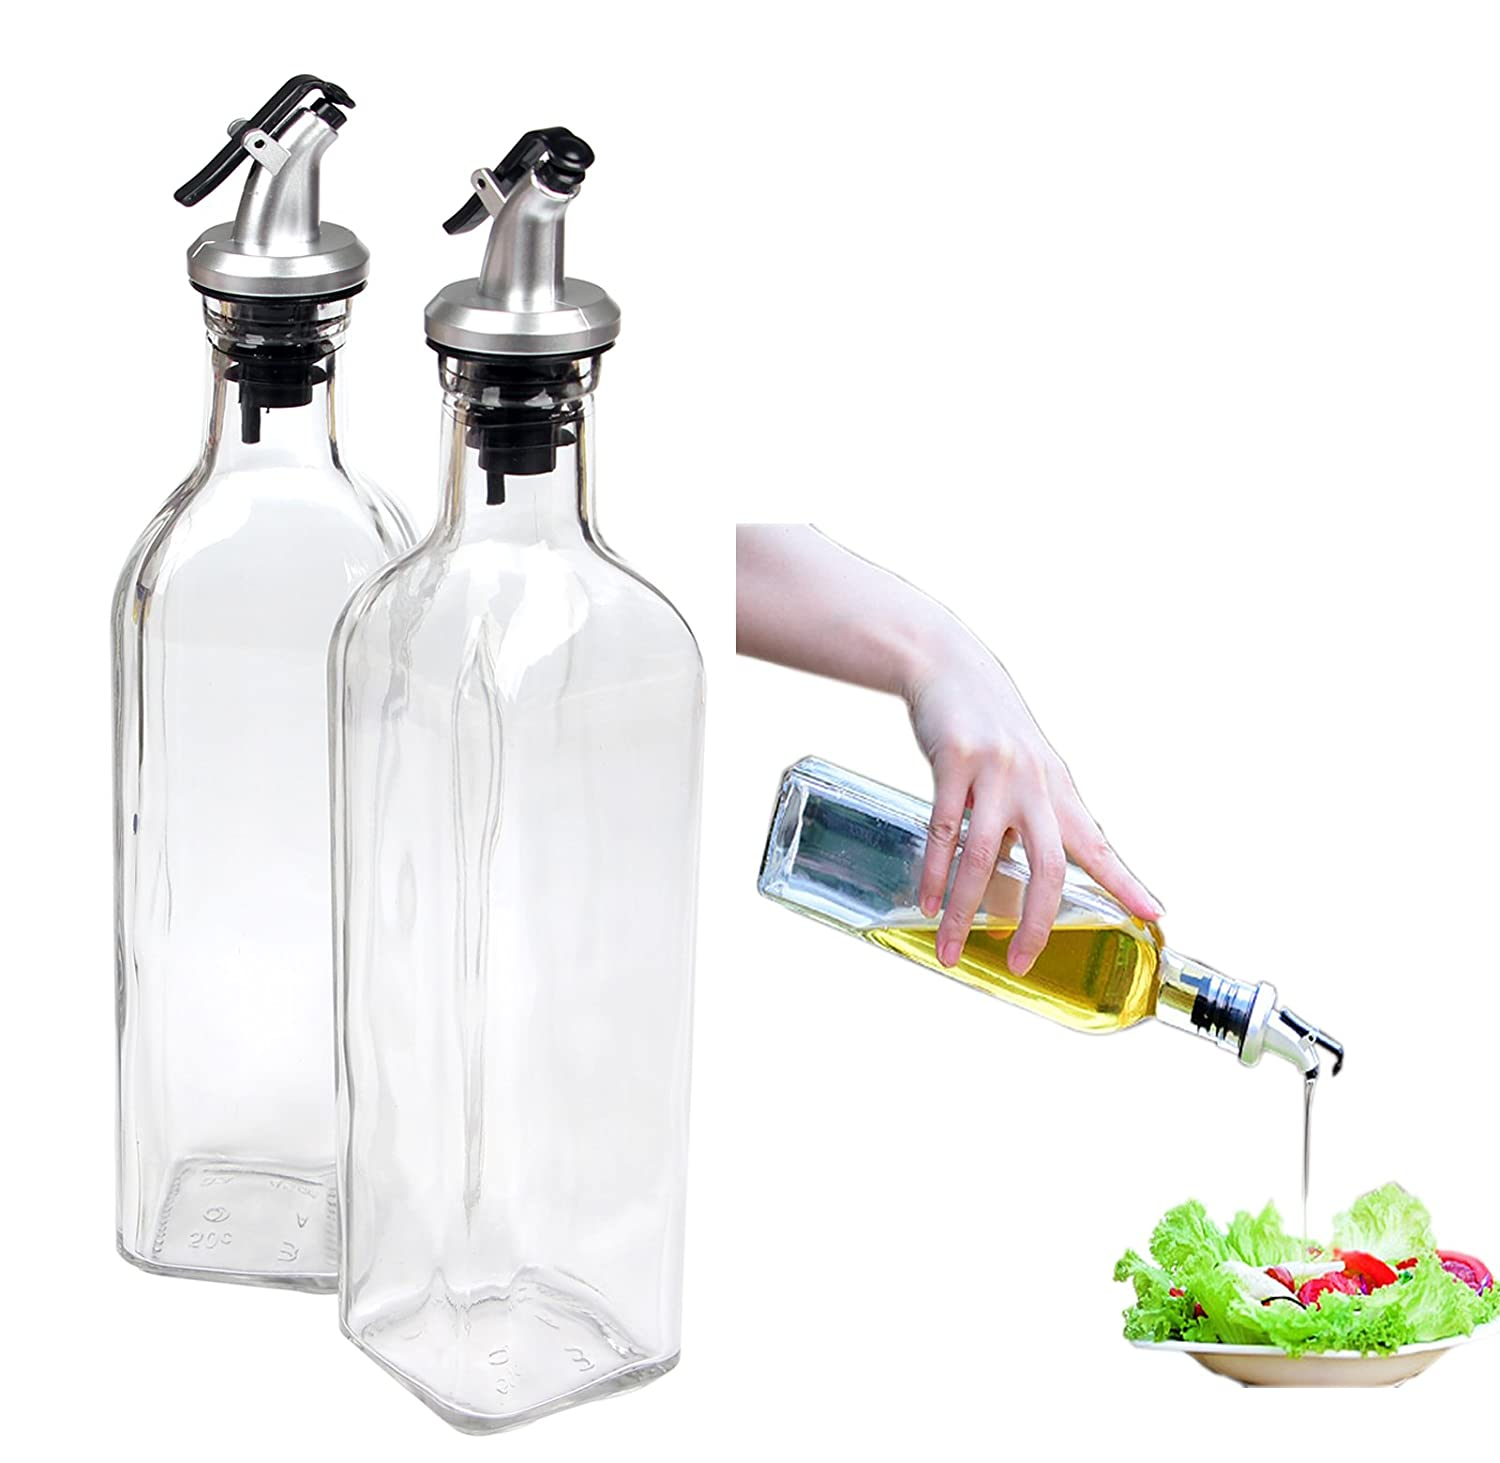 Container Spout Oil Dispenser Bottle Set for Kitchen Cruet Oil Dispenser Glass Bottle for Cooking with Lever Release Pourer,17oz(500ml) by Yier